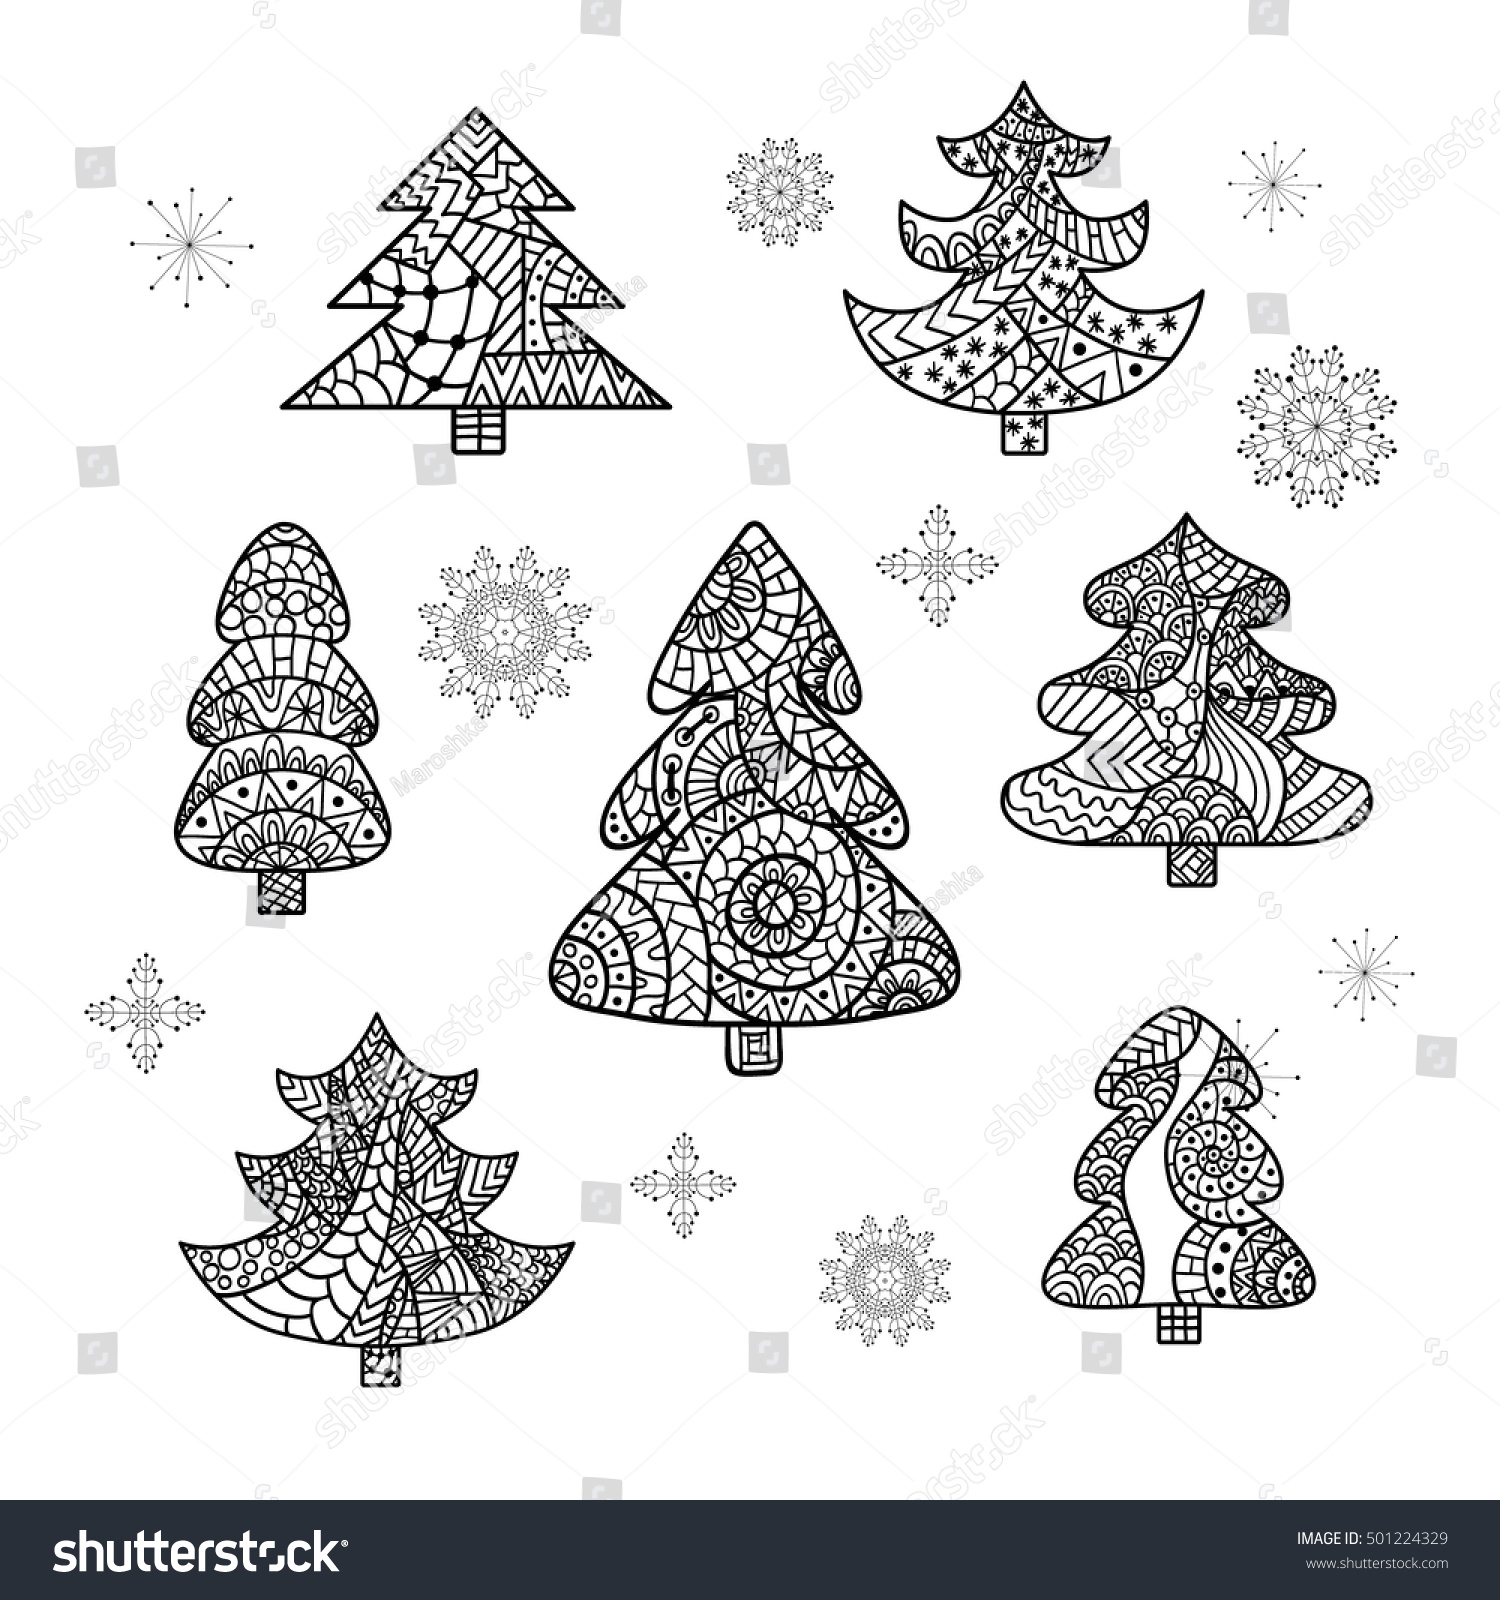 Set Christmas Trees Snowflakes Coloring Page Stock Photo (Photo ...